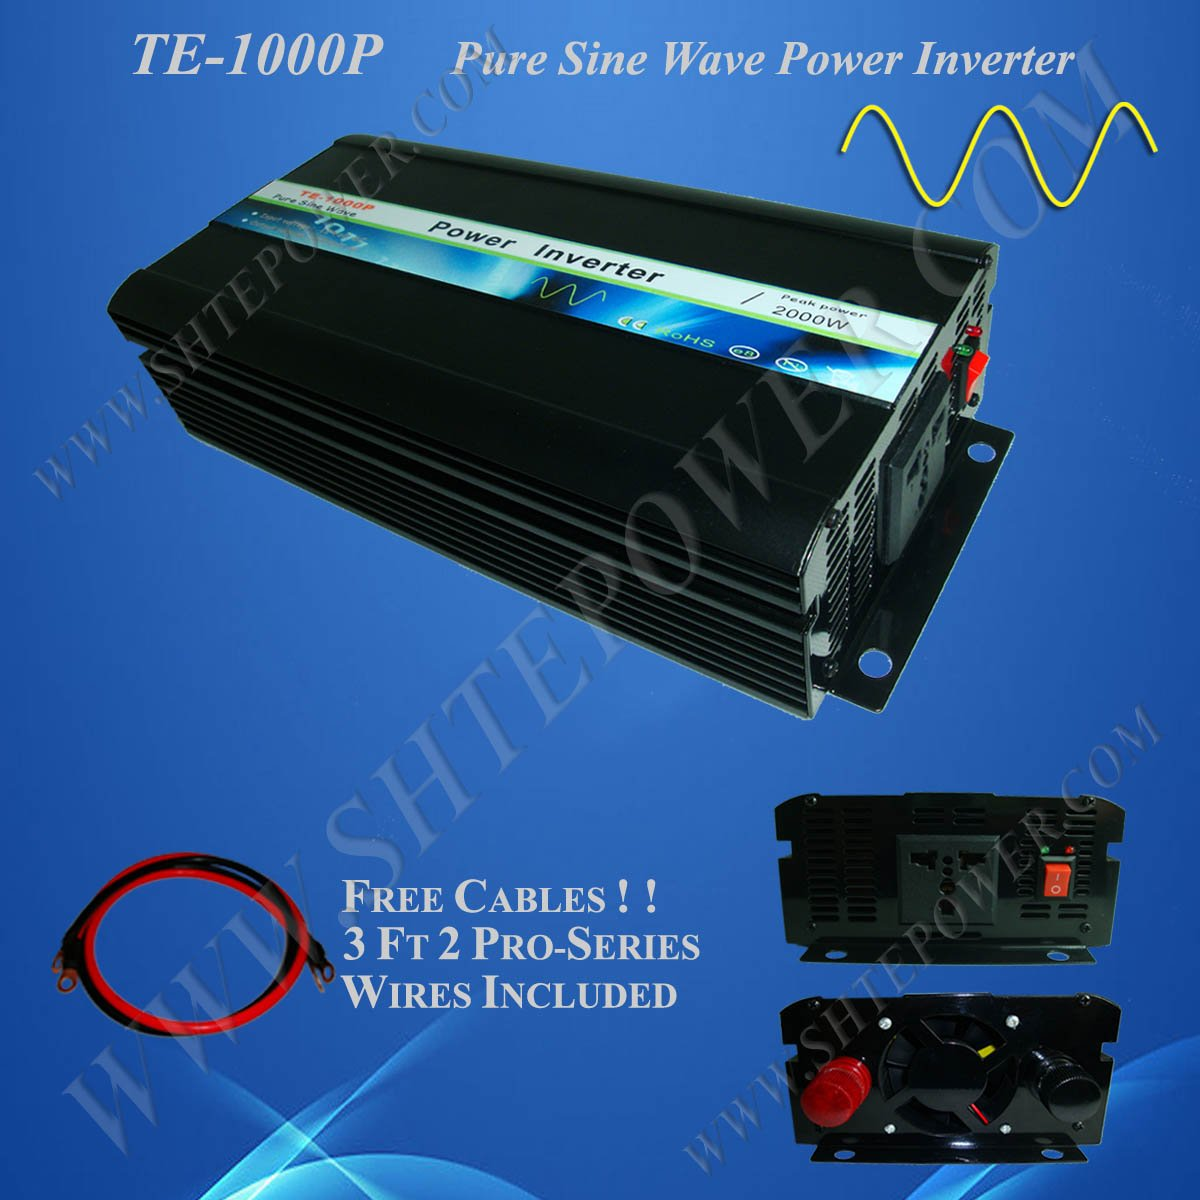 Power inverter DC 12v to AC 230v, 1000w pure sine wave power inverter, CE&RoHS Approved